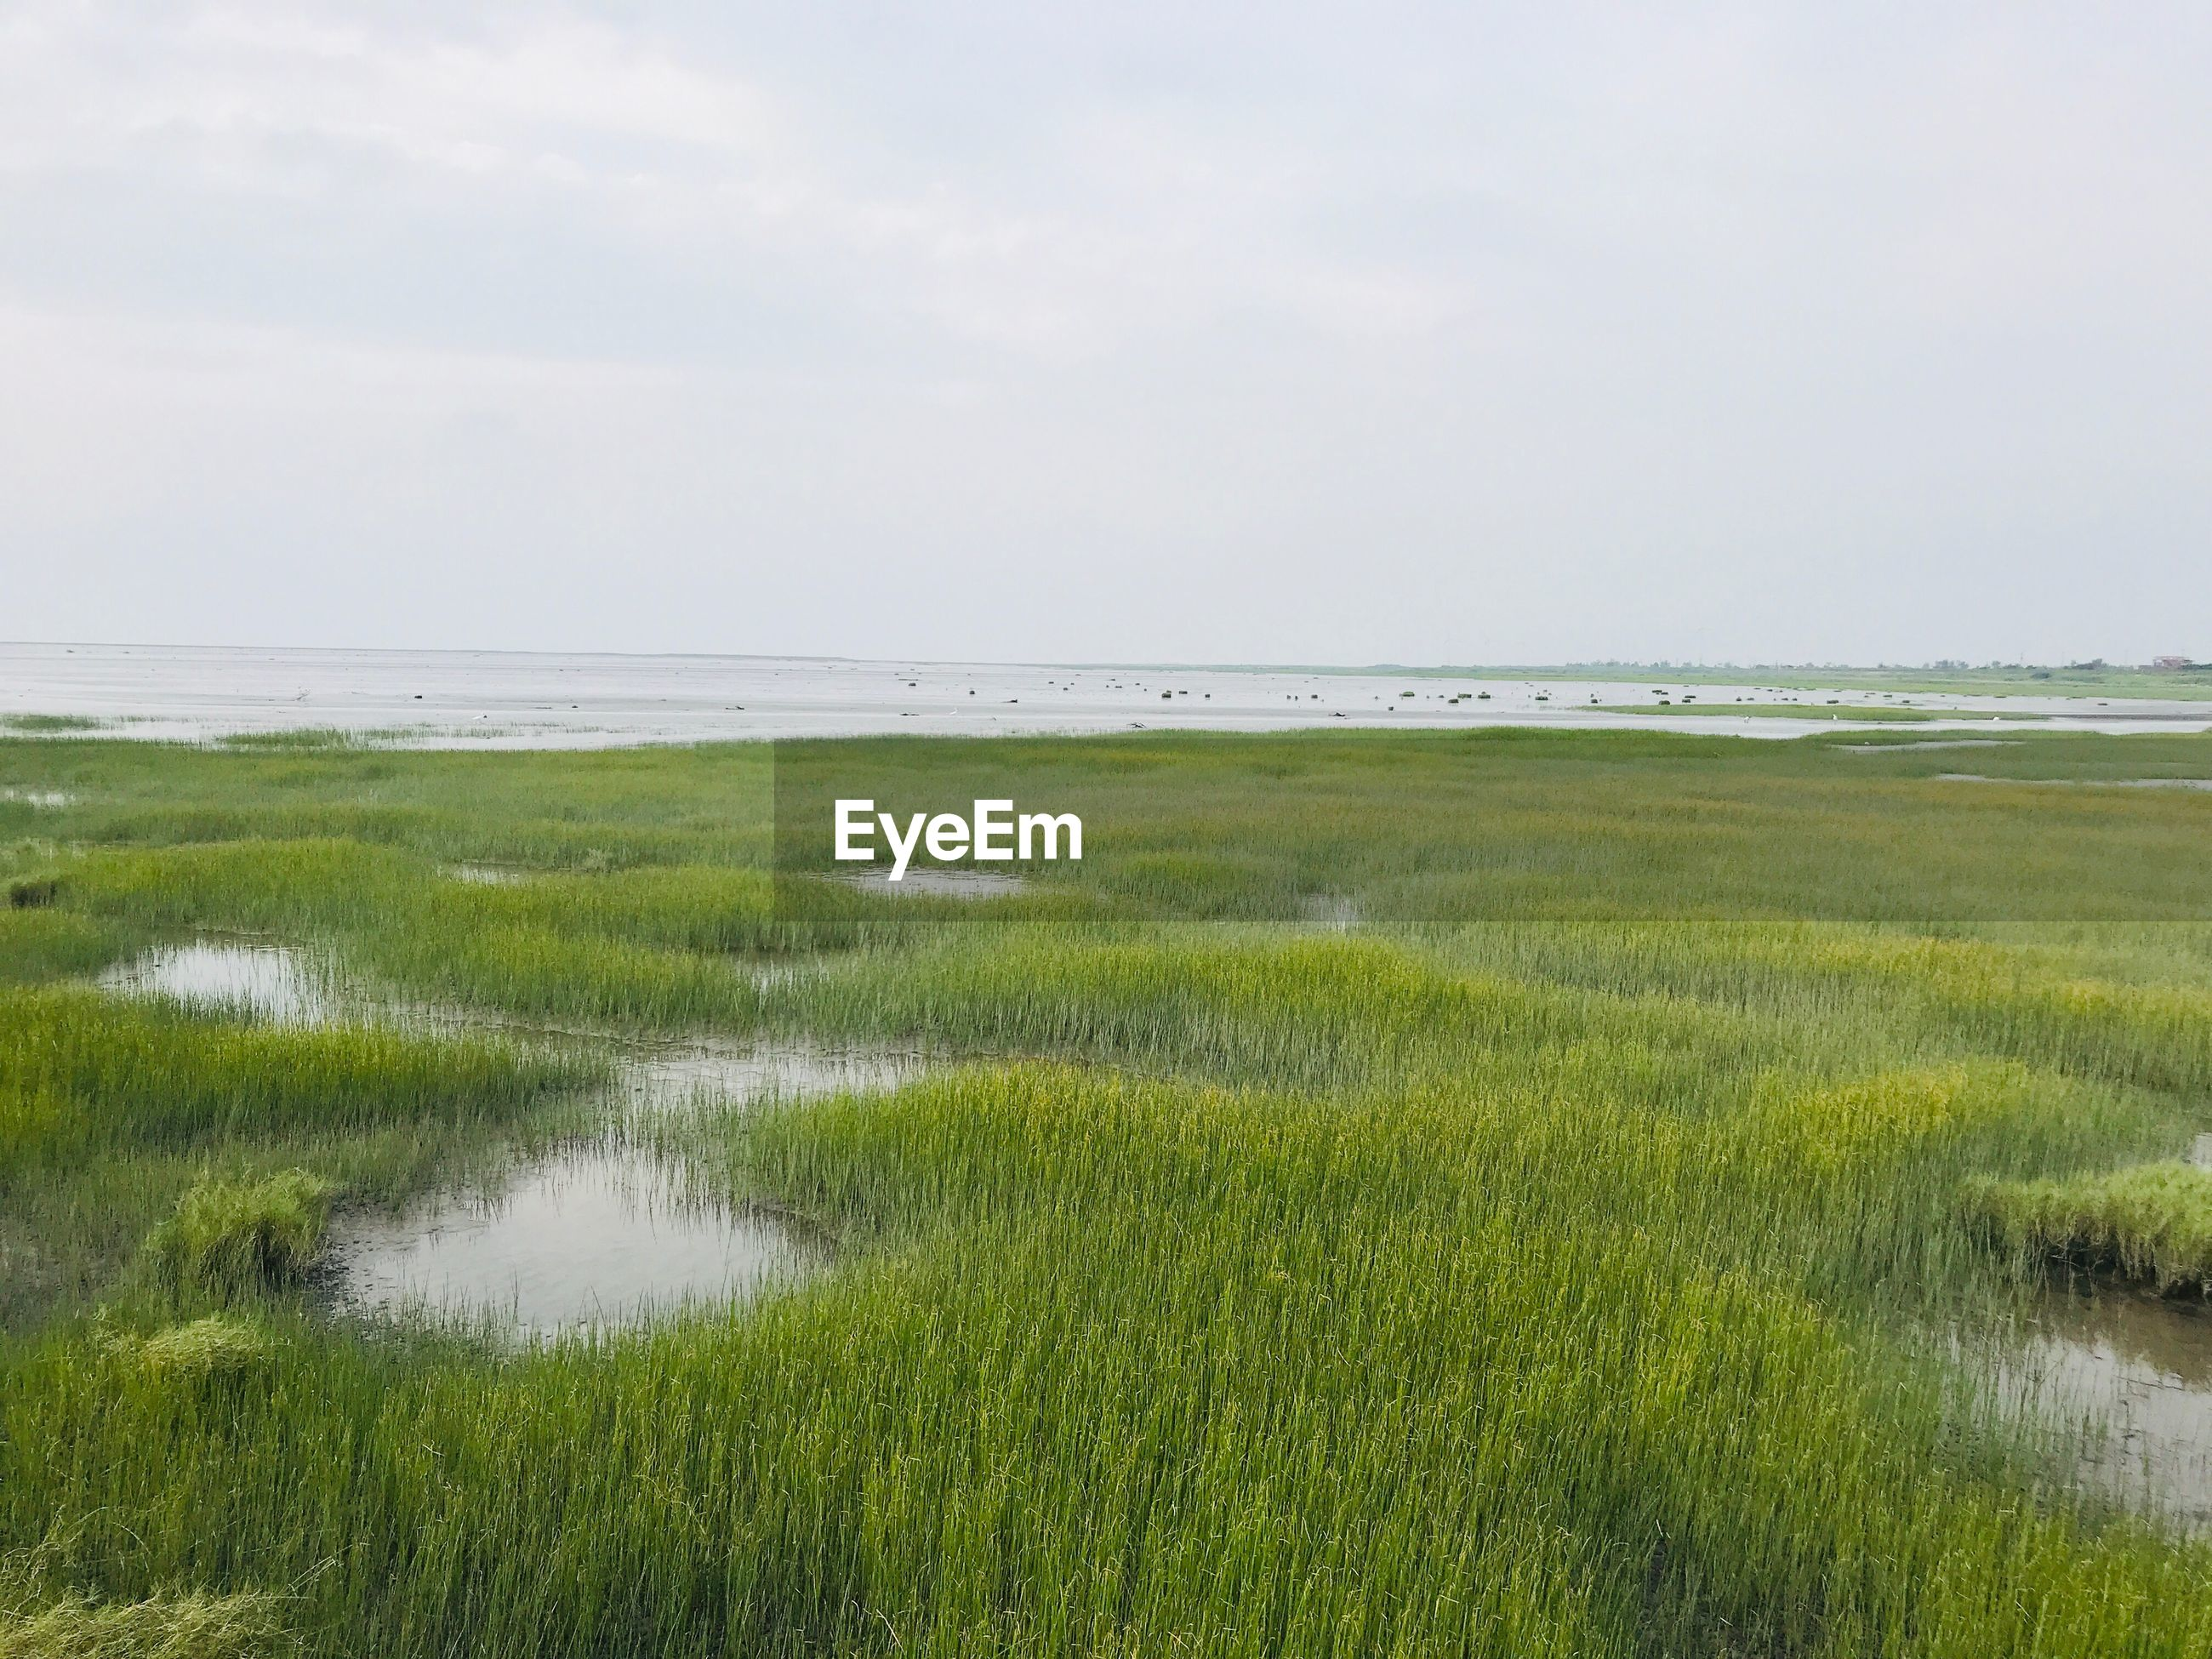 SCENIC VIEW OF SEA AND GRASS AGAINST SKY